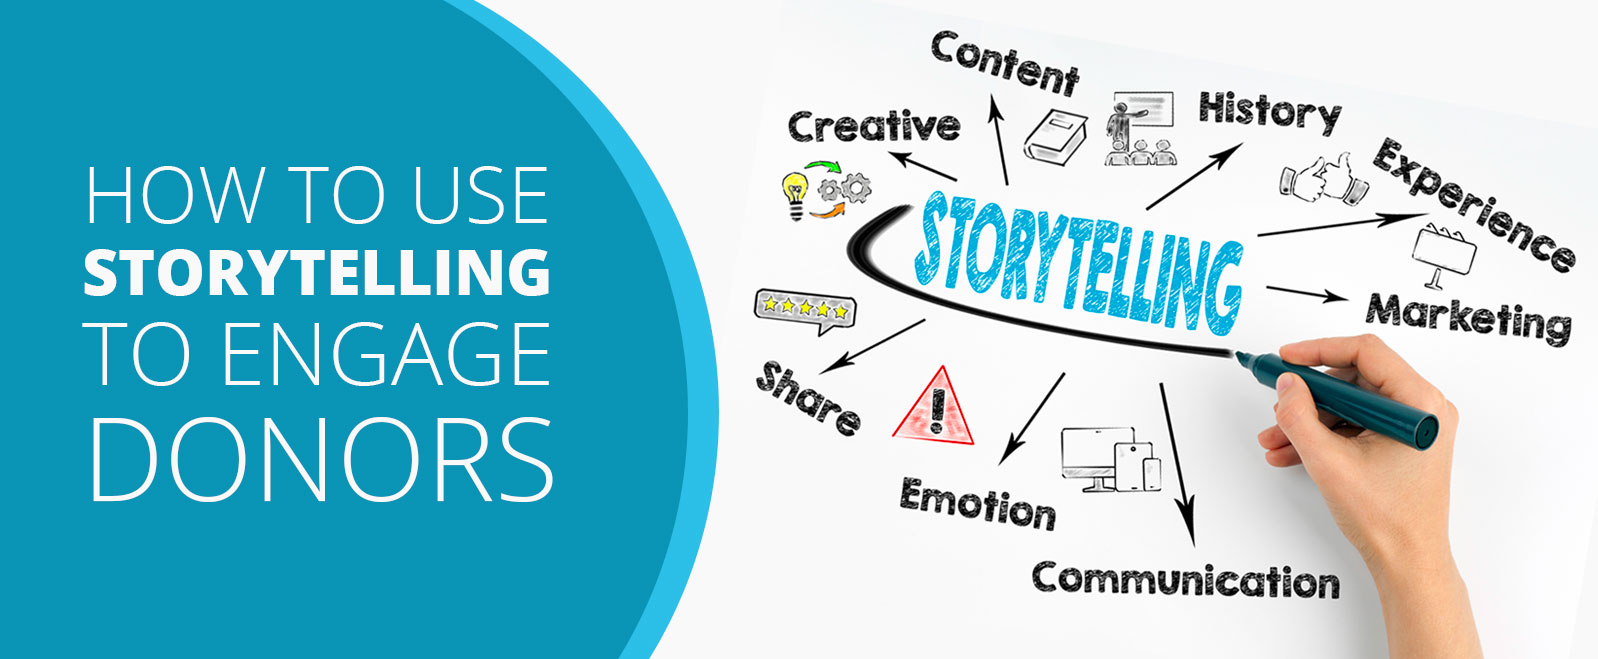 how-to-use-storytelling